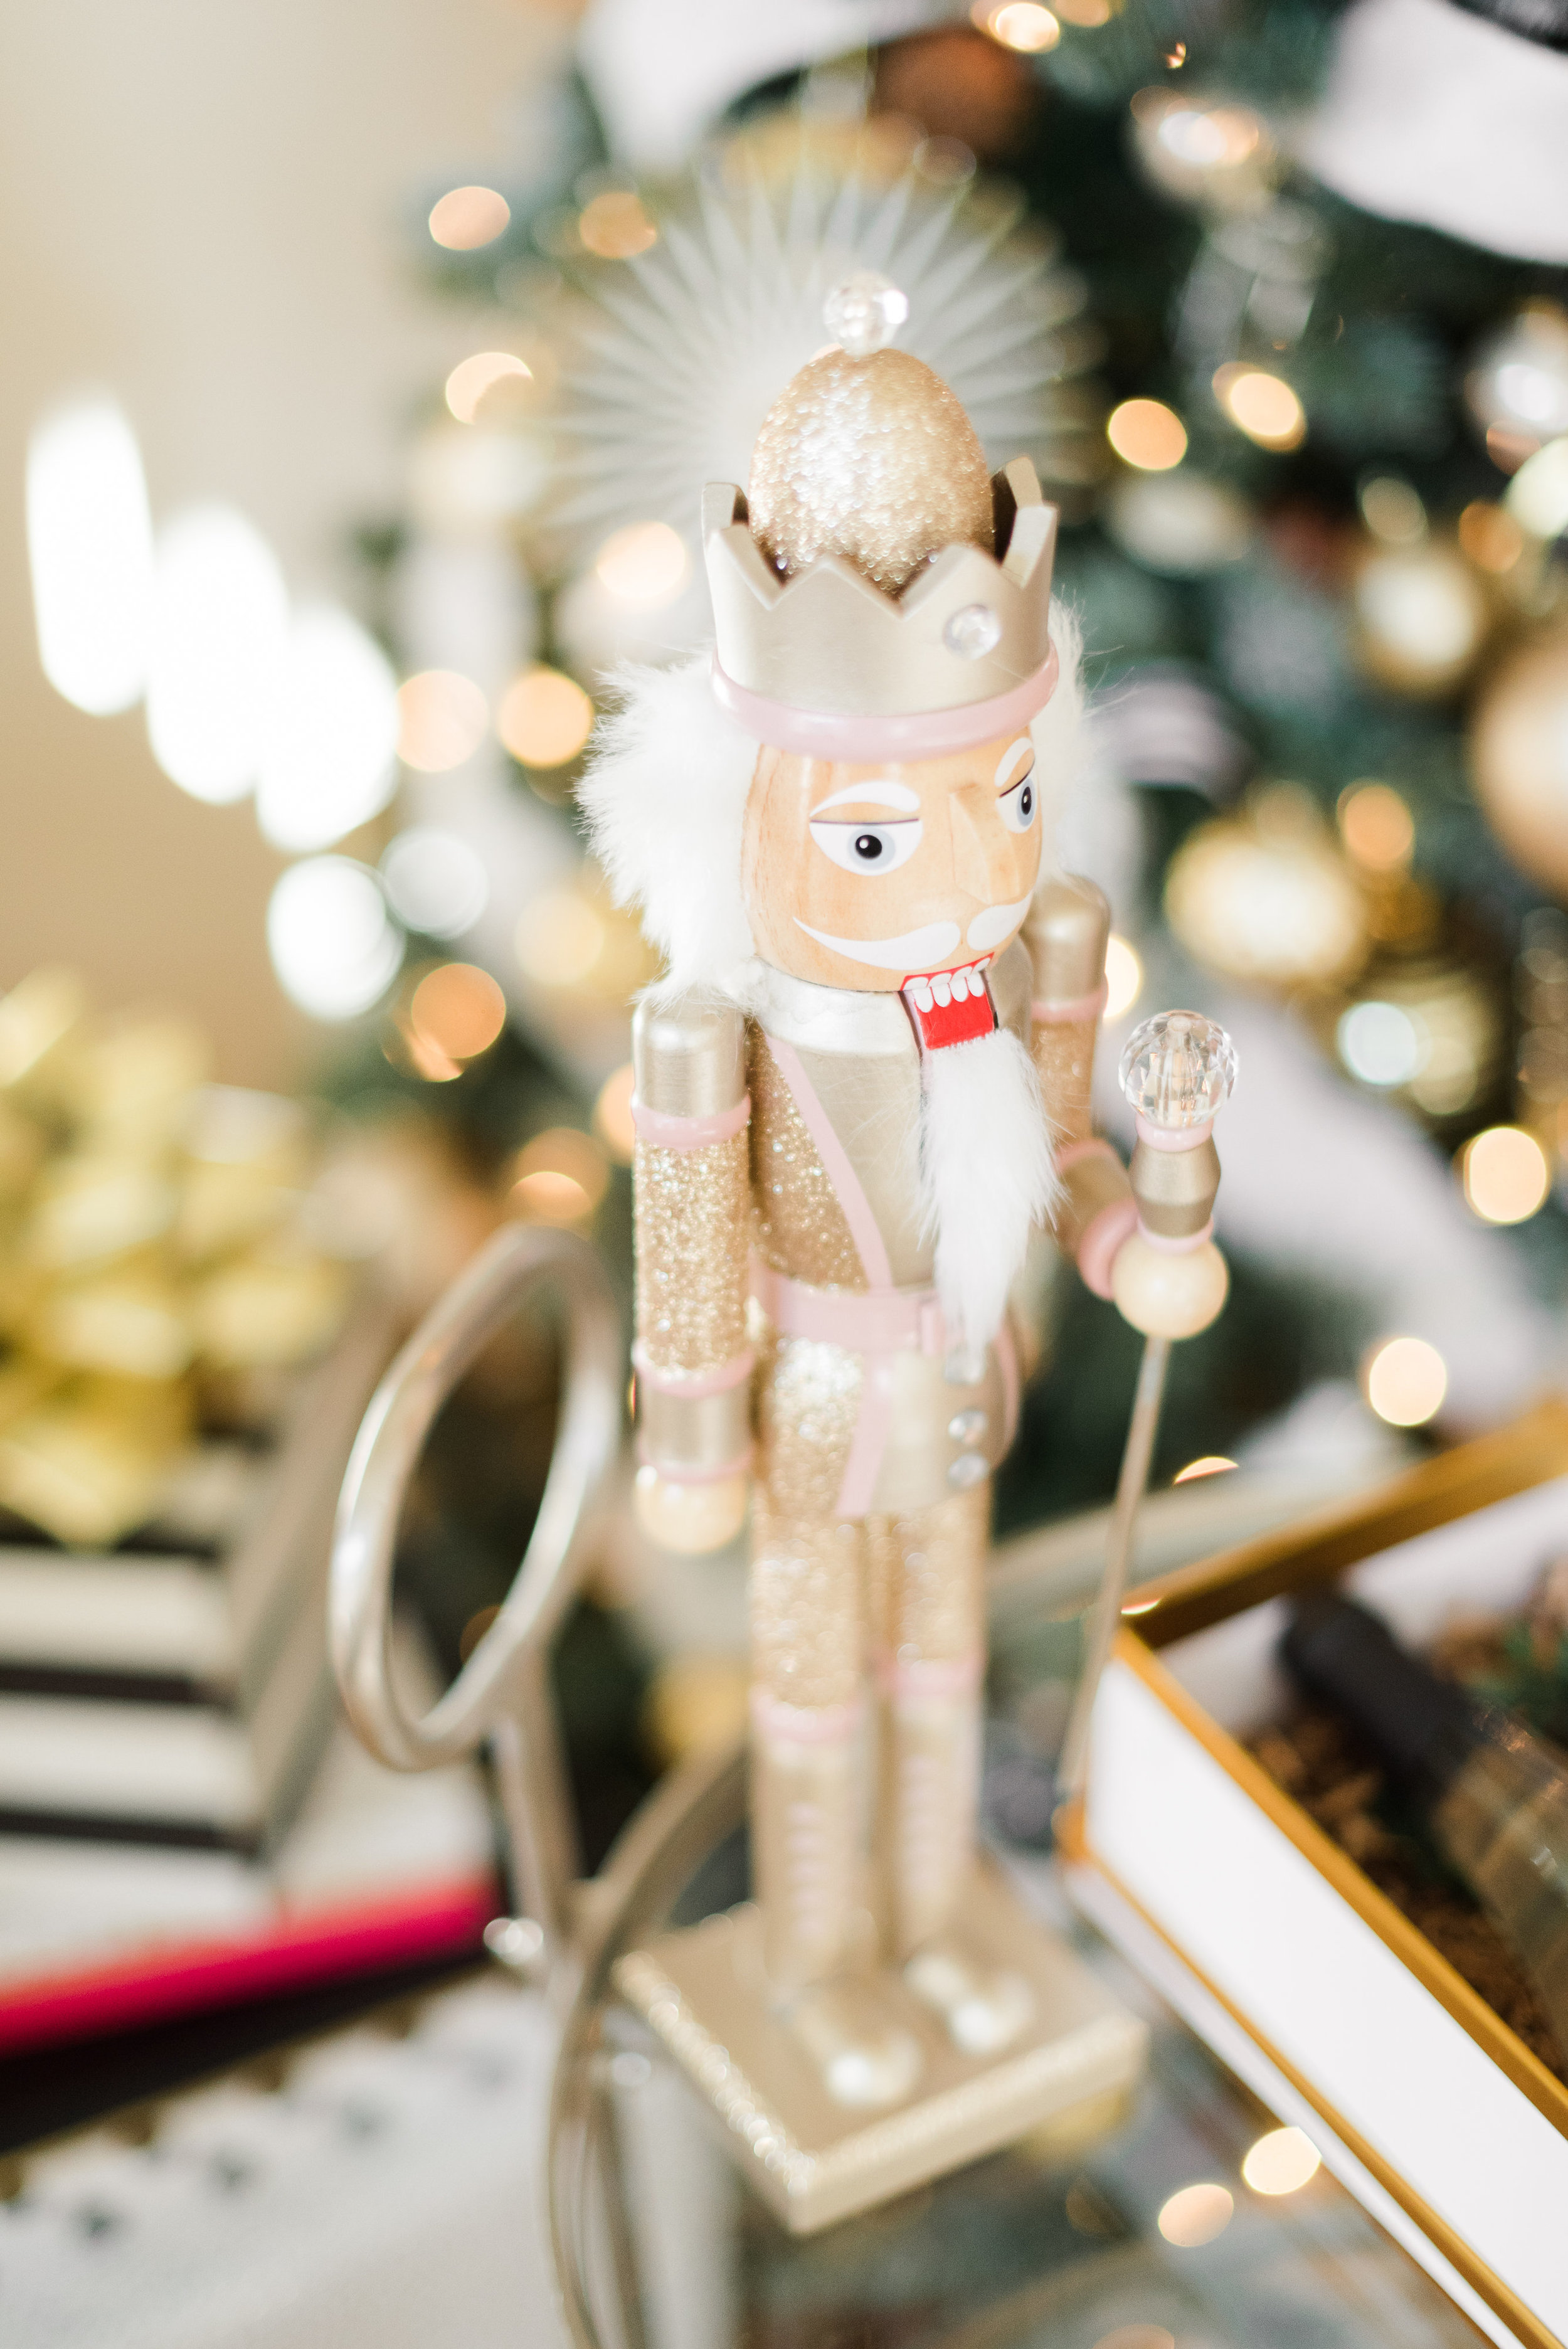 Curated-Gift-Box-Ideas-For-Christmas-and-the-Holidays